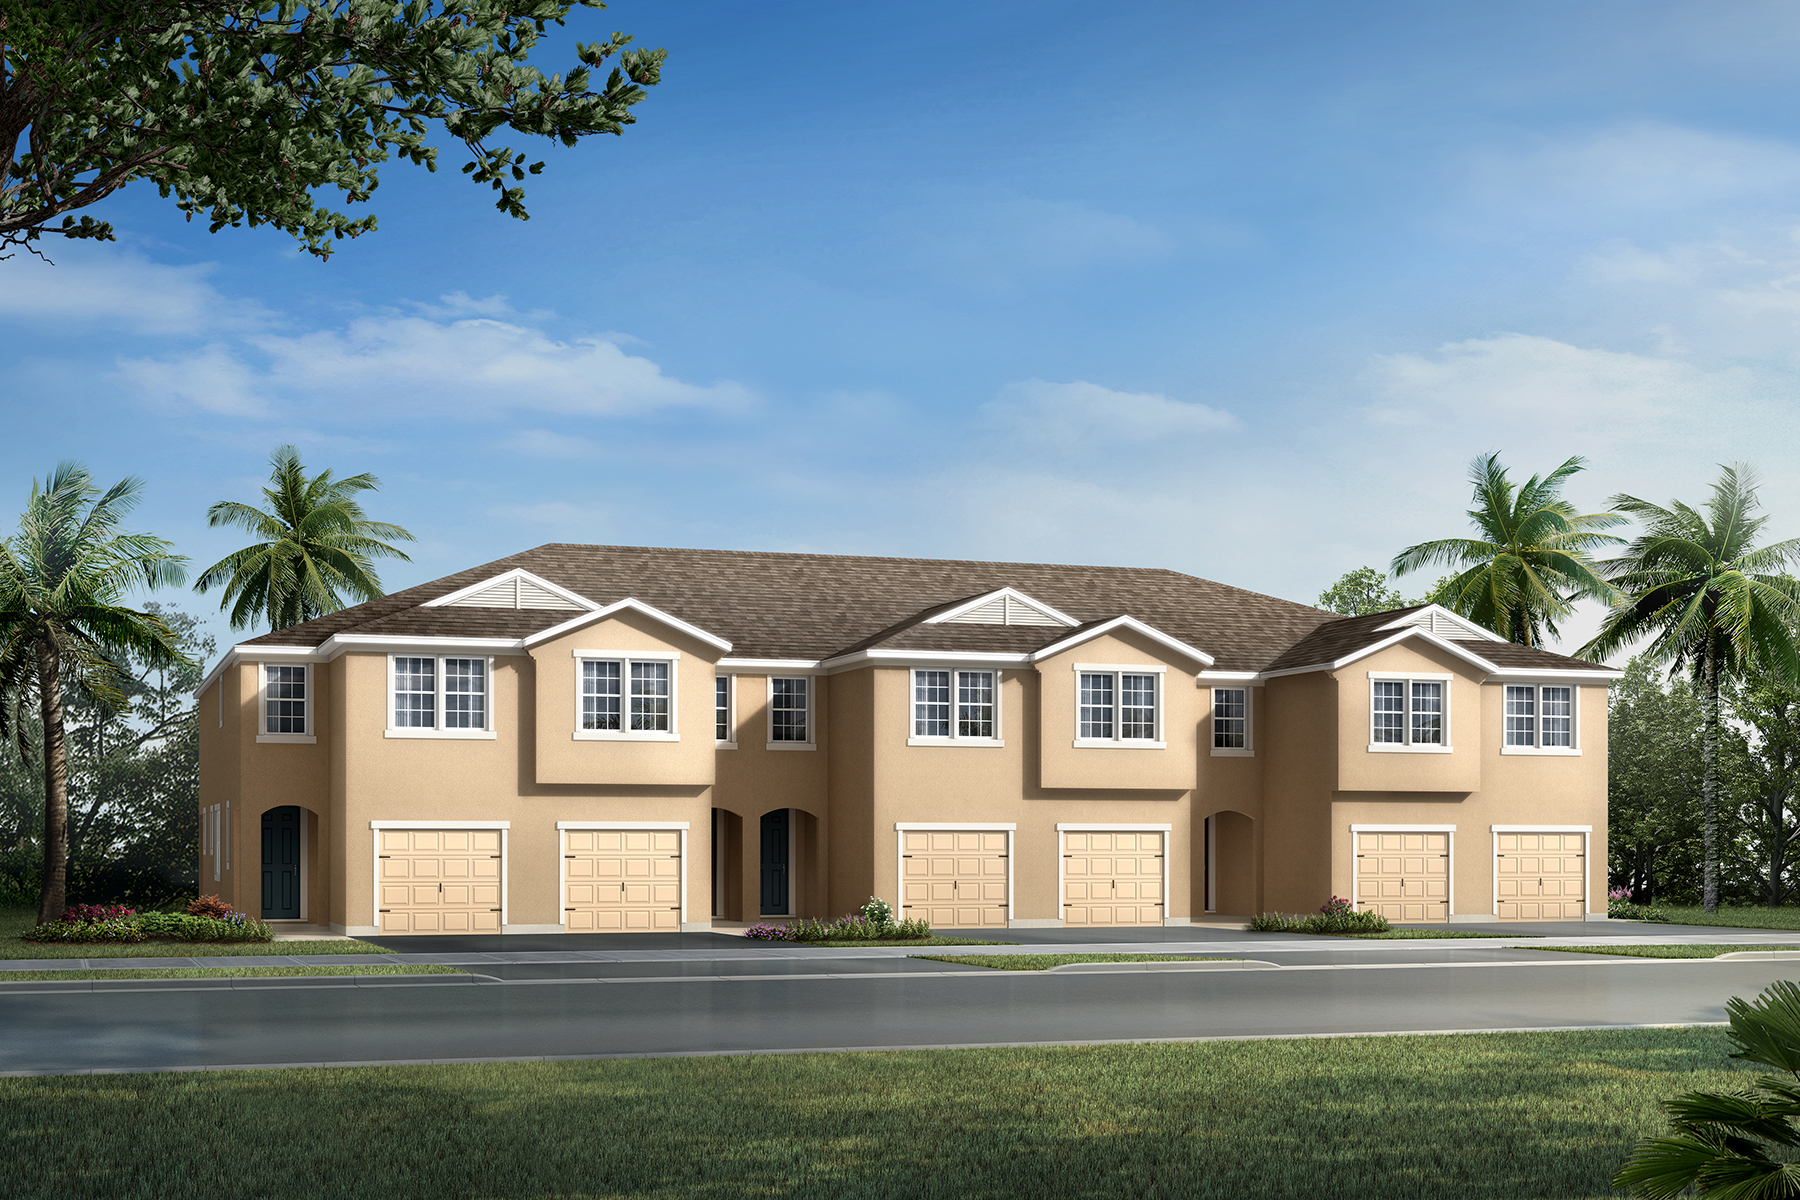 Marianna Plan Elevation Front at Avea Pointe in Lutz Florida by Mattamy Homes